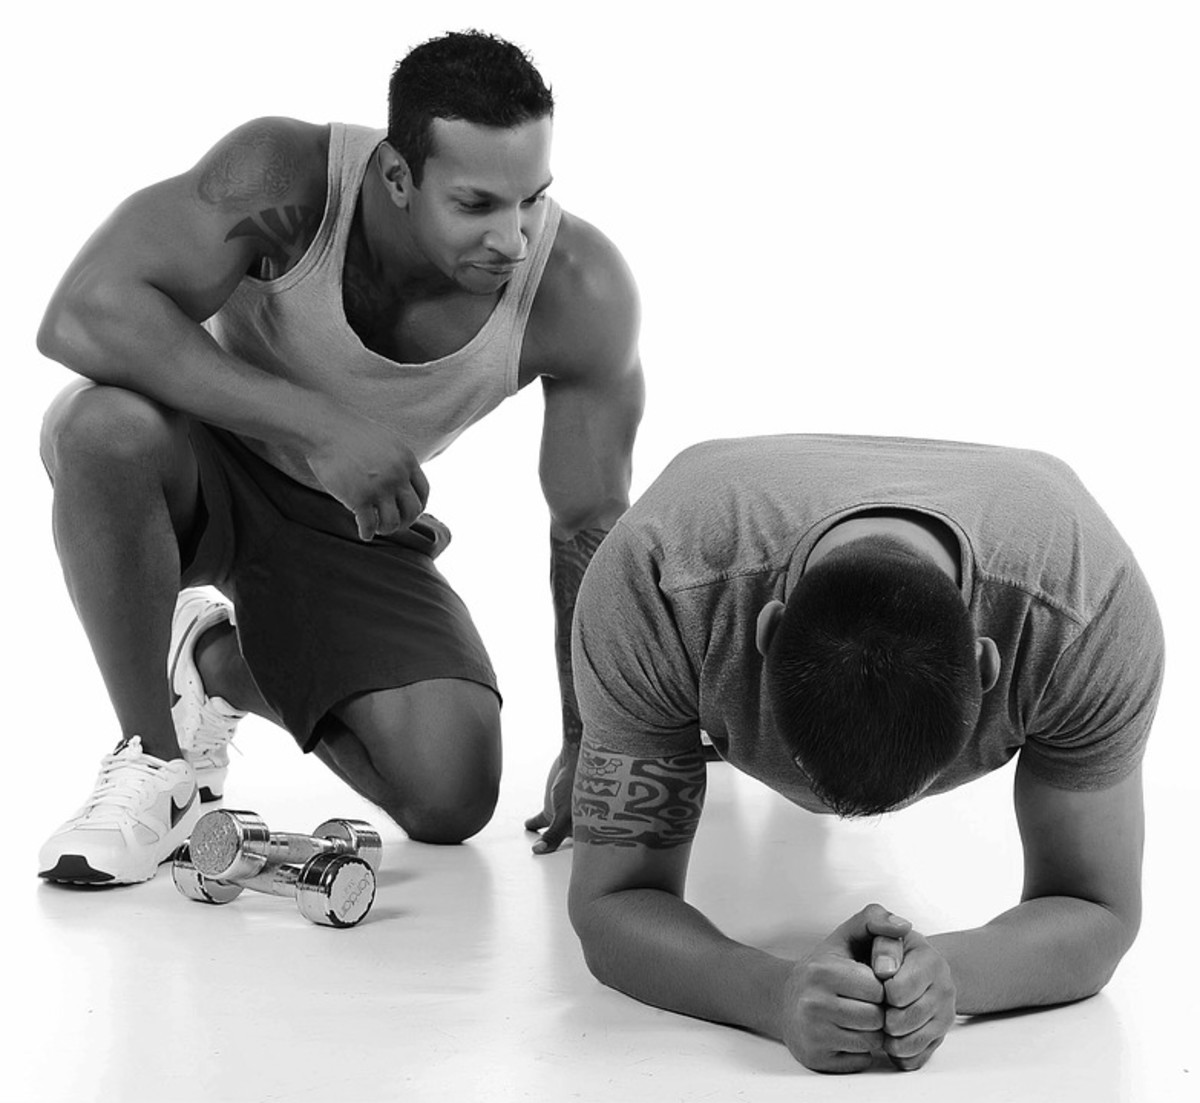 Having a workout partner who is committed and consistent could be argued as one of the most important traits.